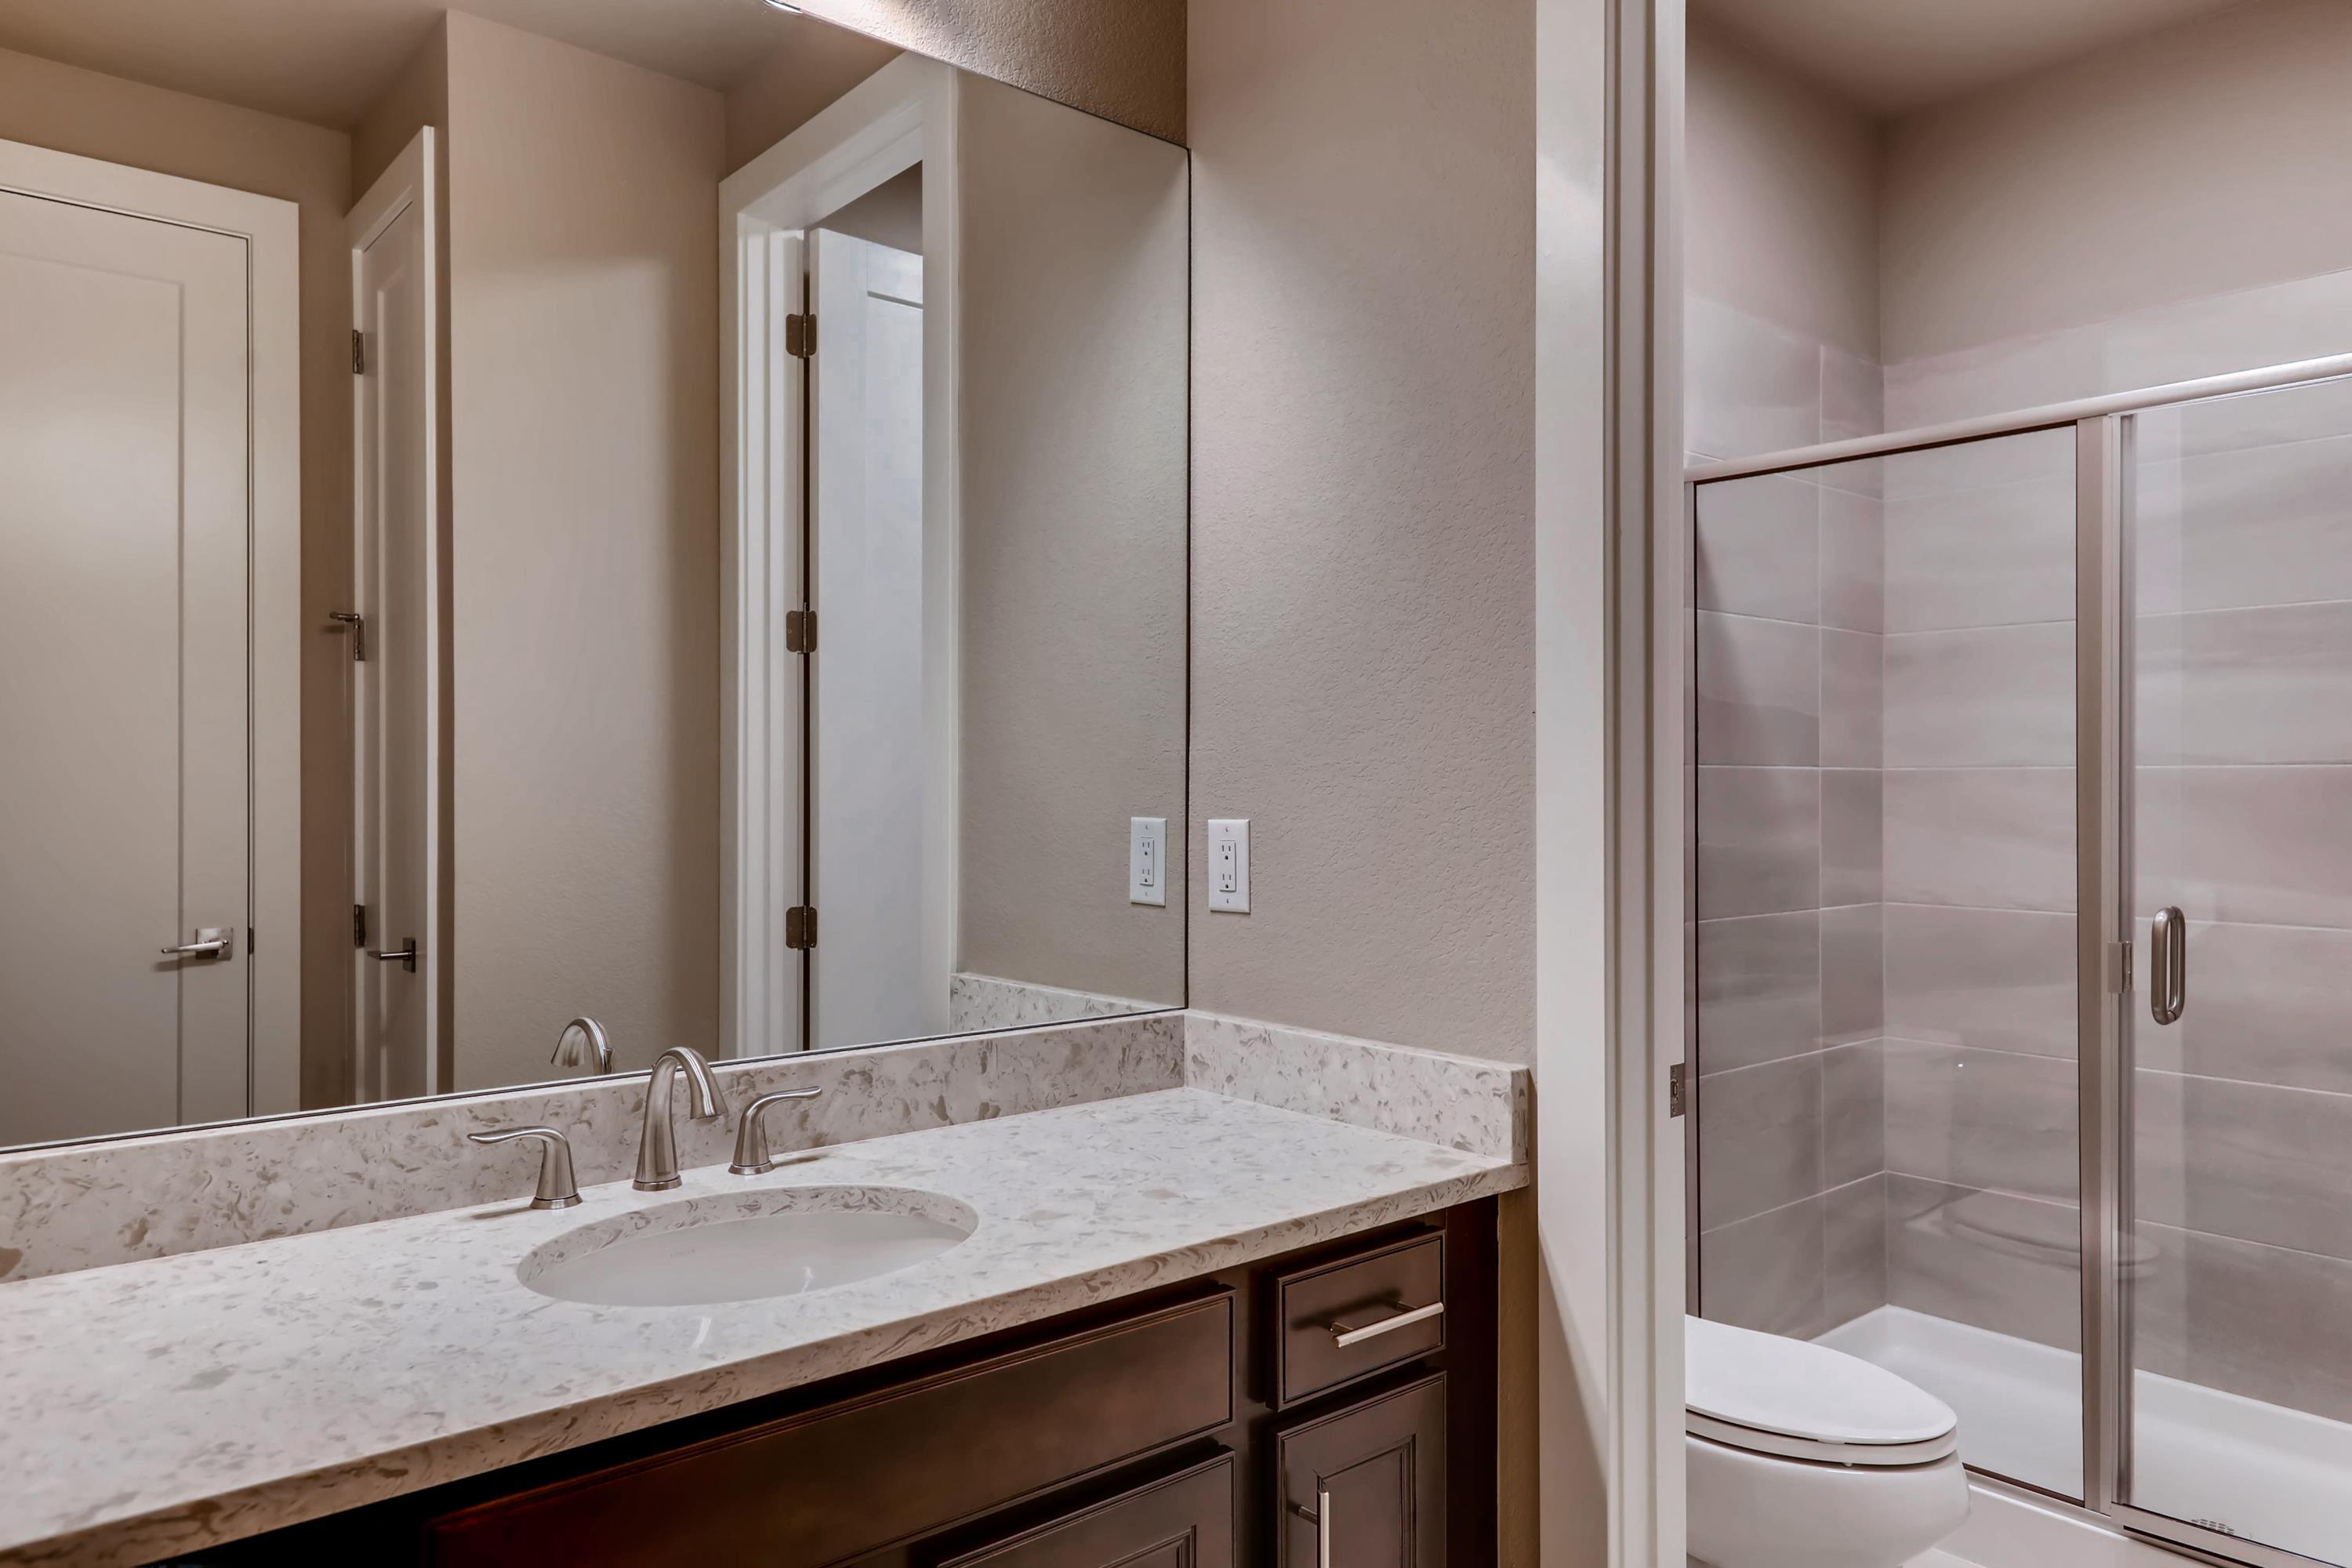 Bathroom featured in the Signature Series Plan One By Celebrity Communities in Denver, CO